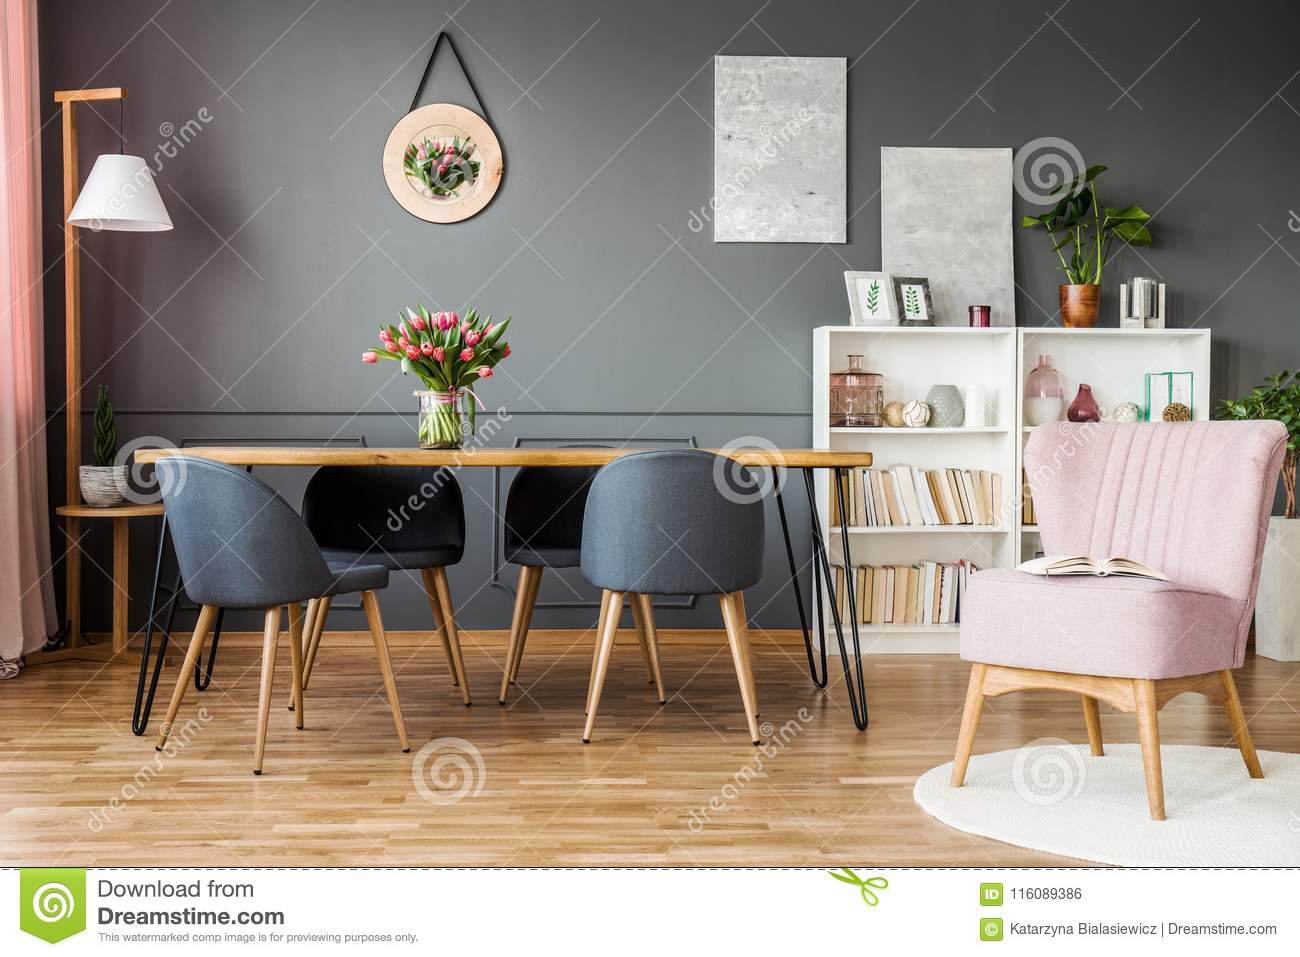 Pink Armchair Next To Grey Chairs At Wooden Table With Tulips In Elegant Dining Room Interior